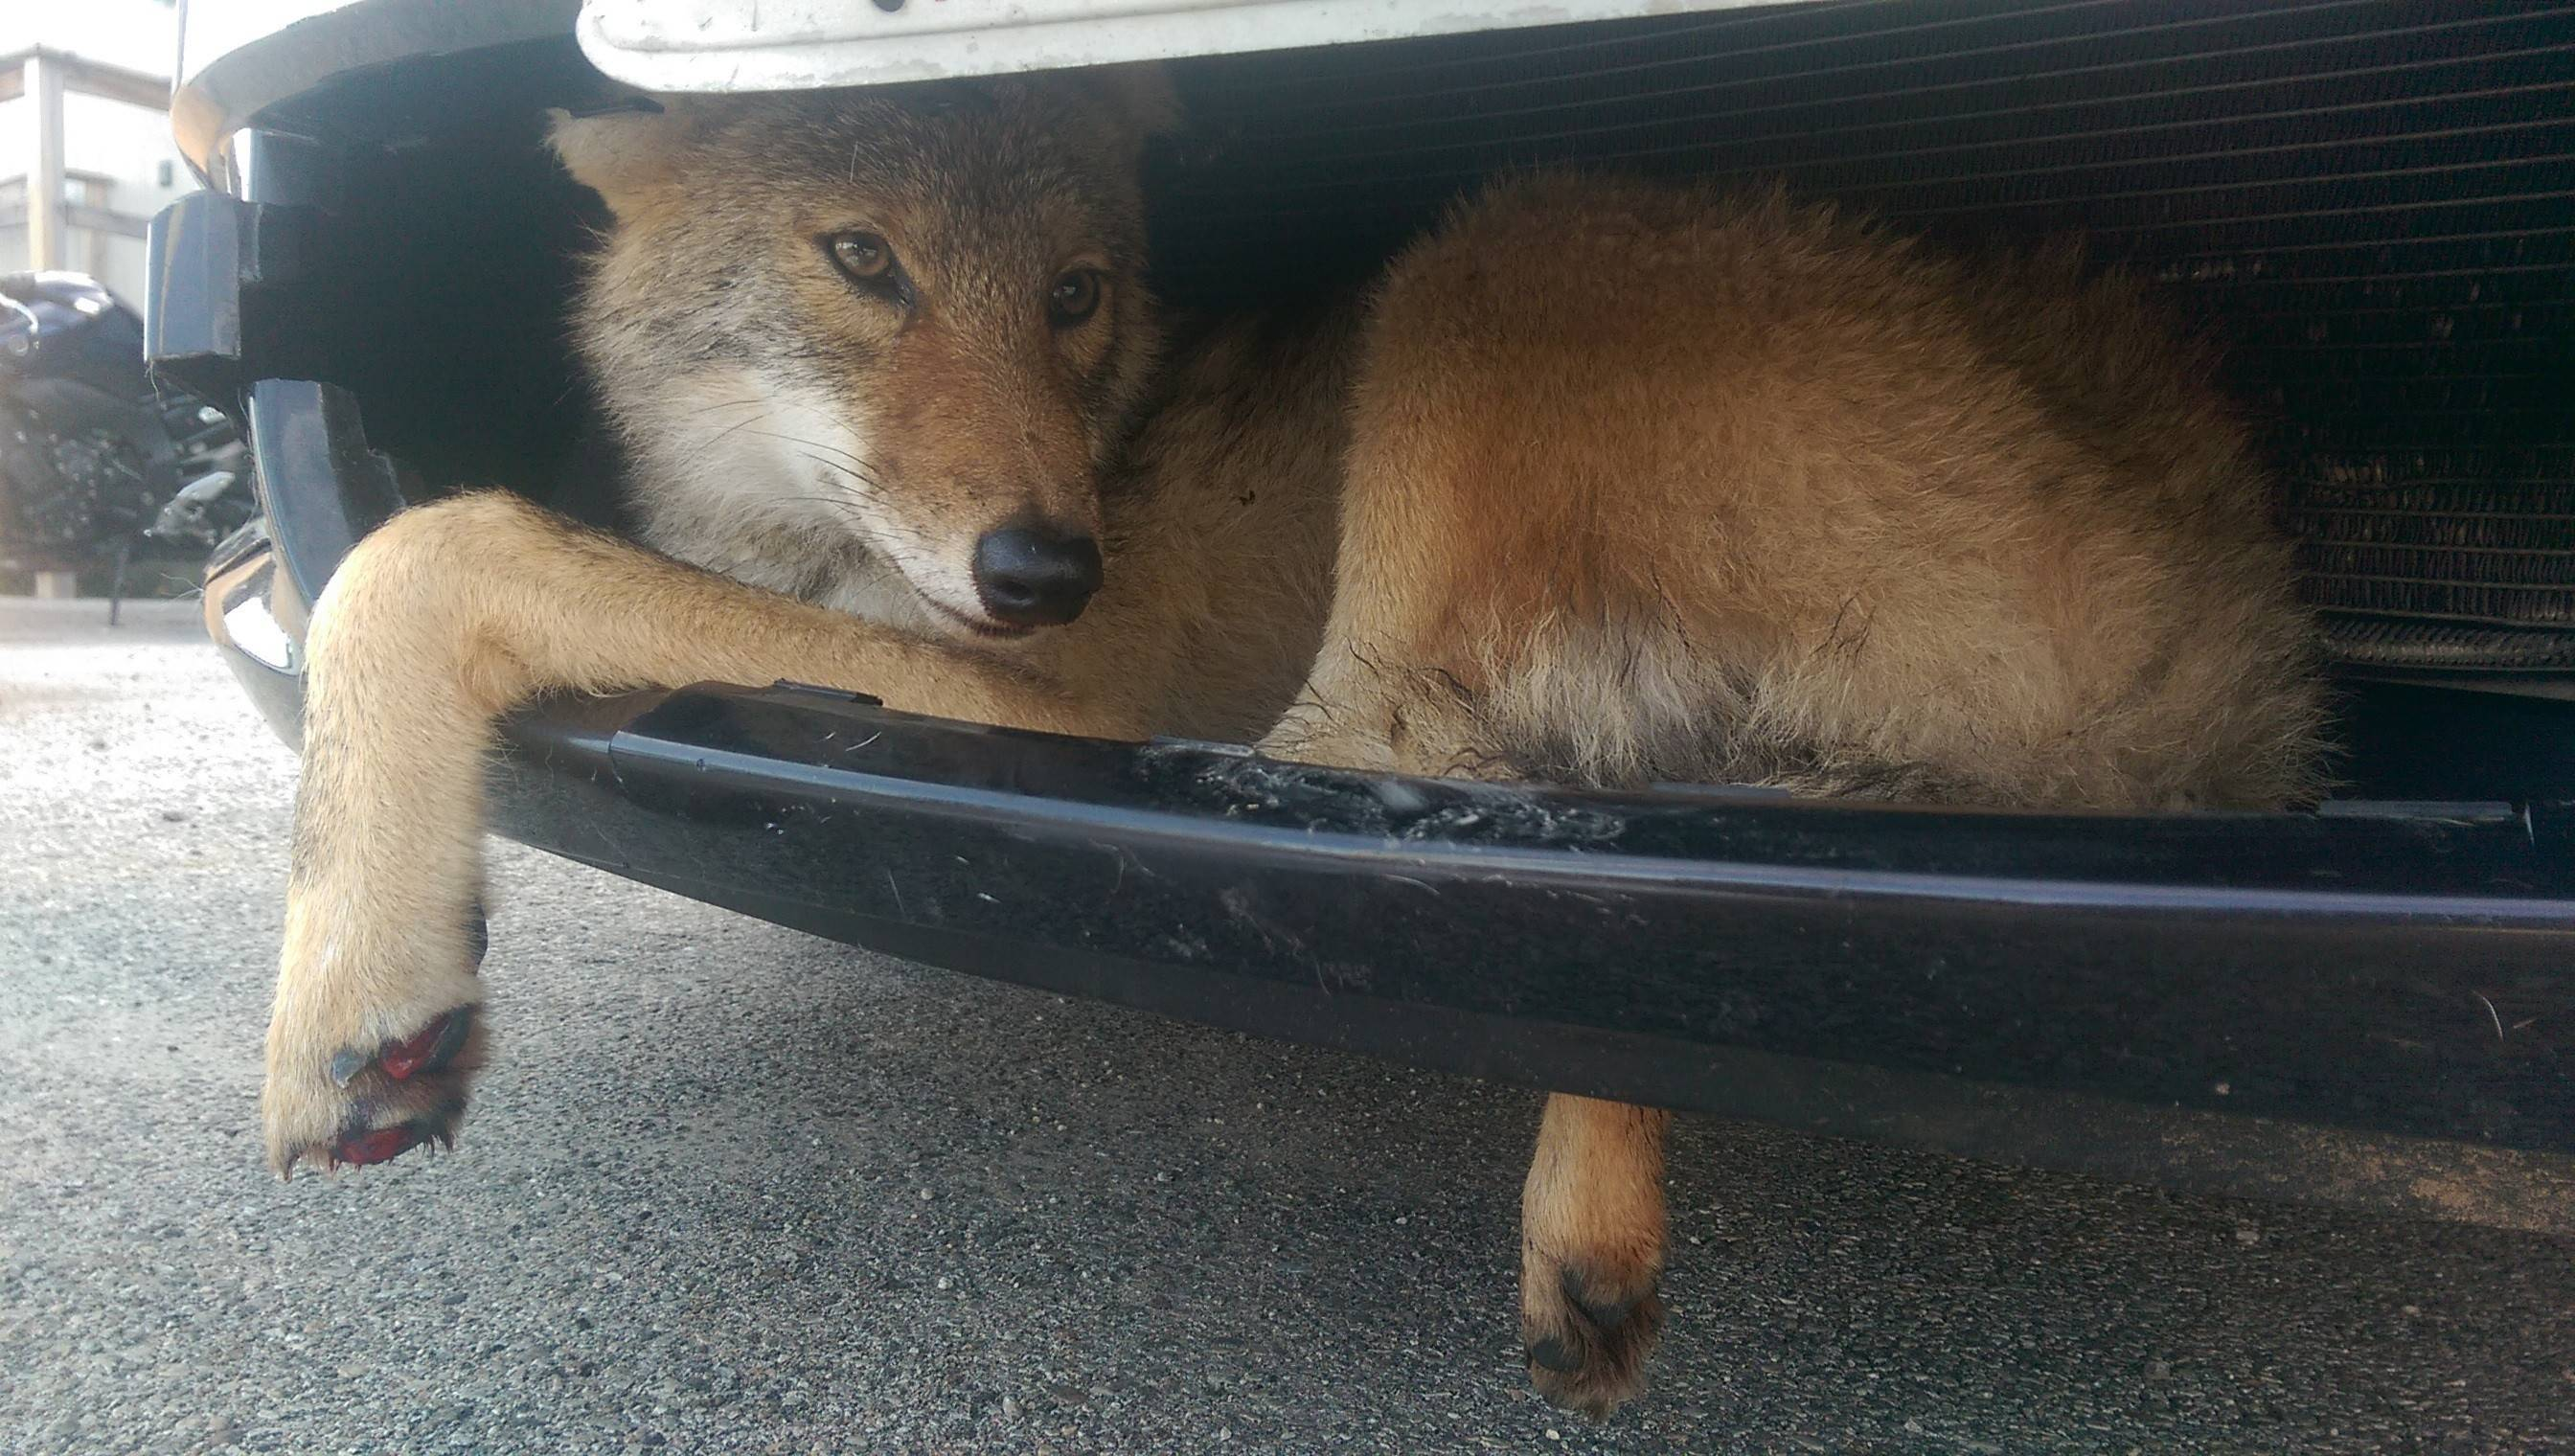 Coyote rescued from car grille returns to wild